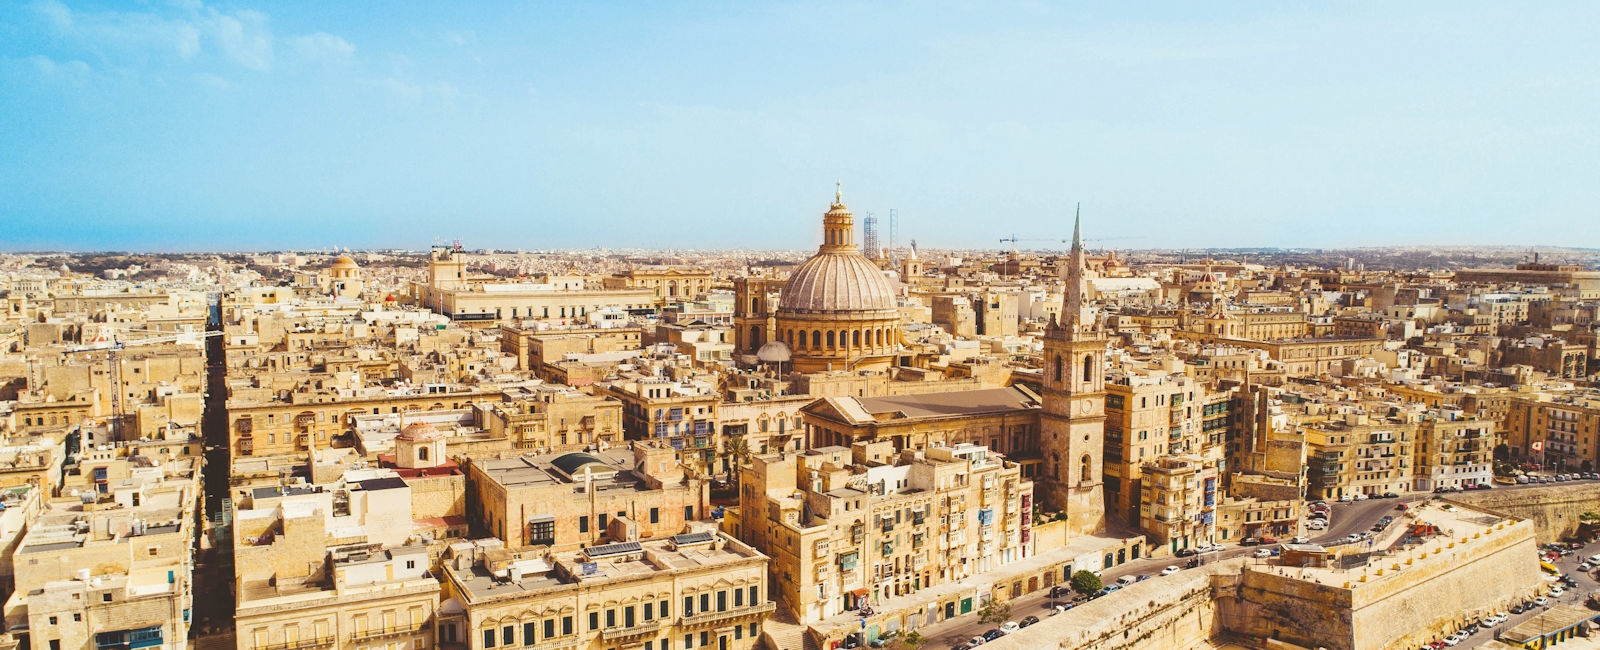 Banking Sector in Malta Maintains Buoyant Trend